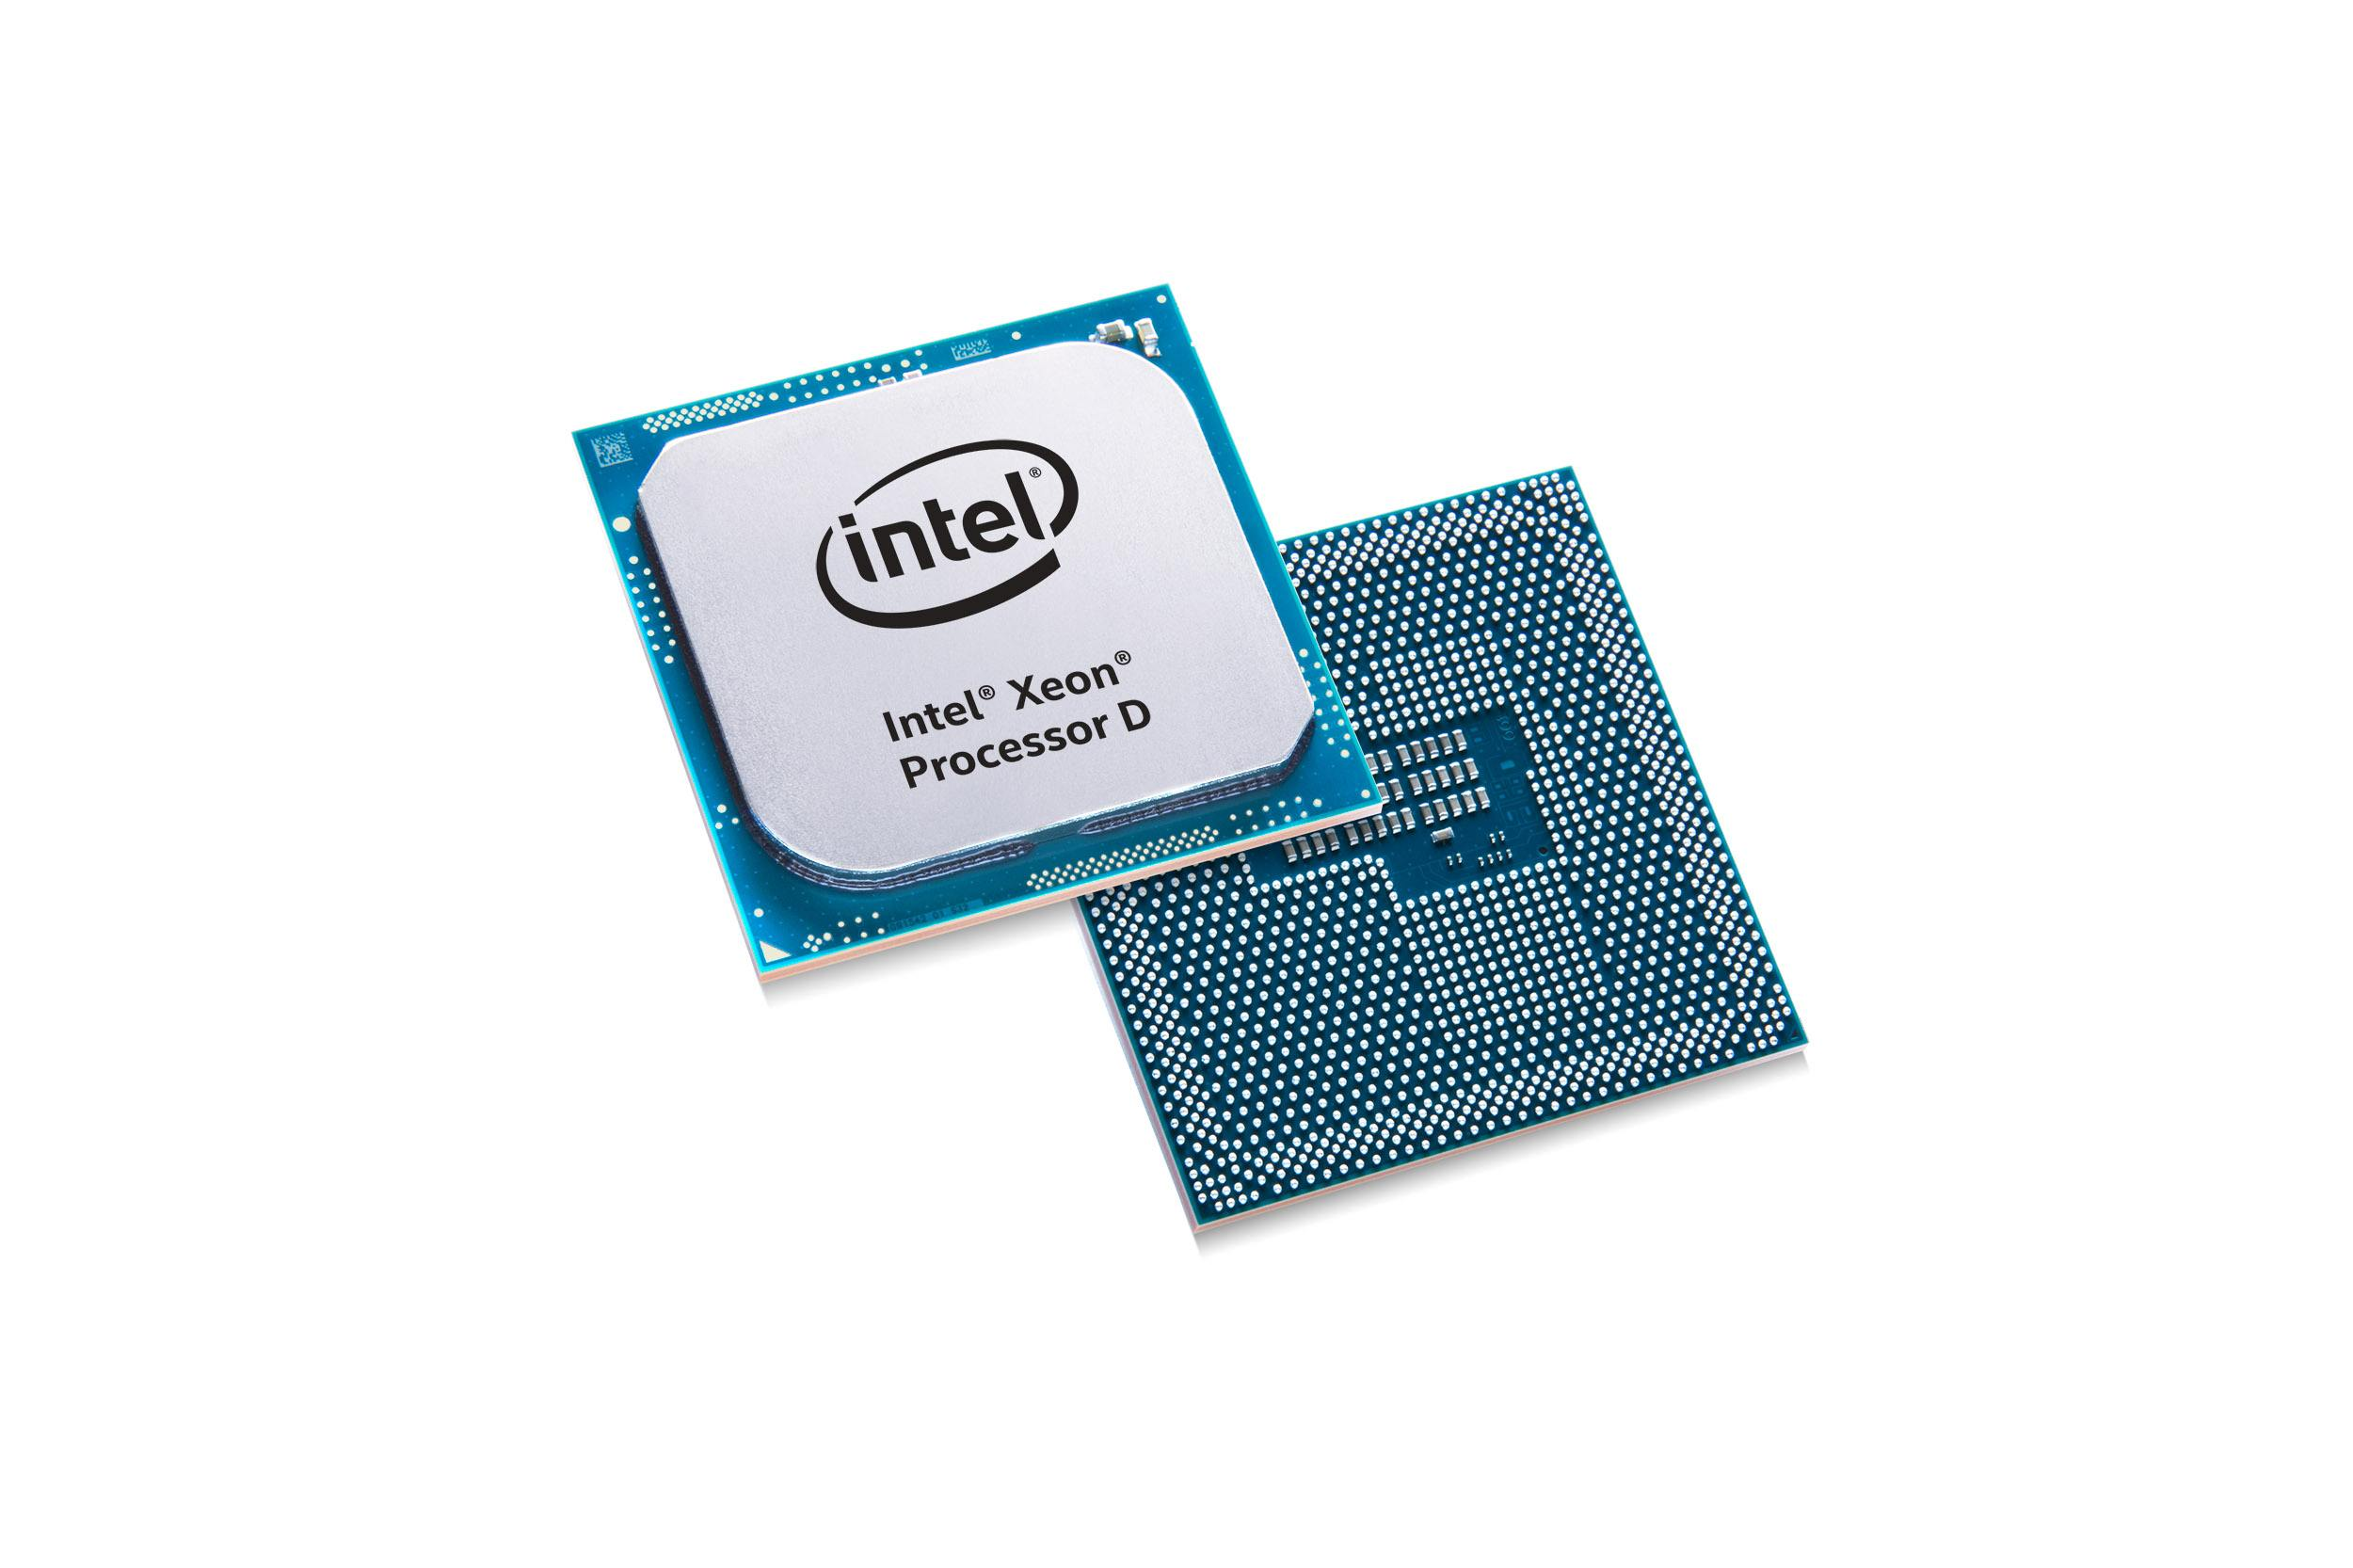 New Networking SKUs for the Intel Xeon processor D-1500 product family allows CoSPs to scale up performance beyond the Intel Atom C3000 product family and securely process and compress traffic at the network edge at rates up to 40 Gbps with Intel QuickAssist technology. (Credit: Intel Corporation)